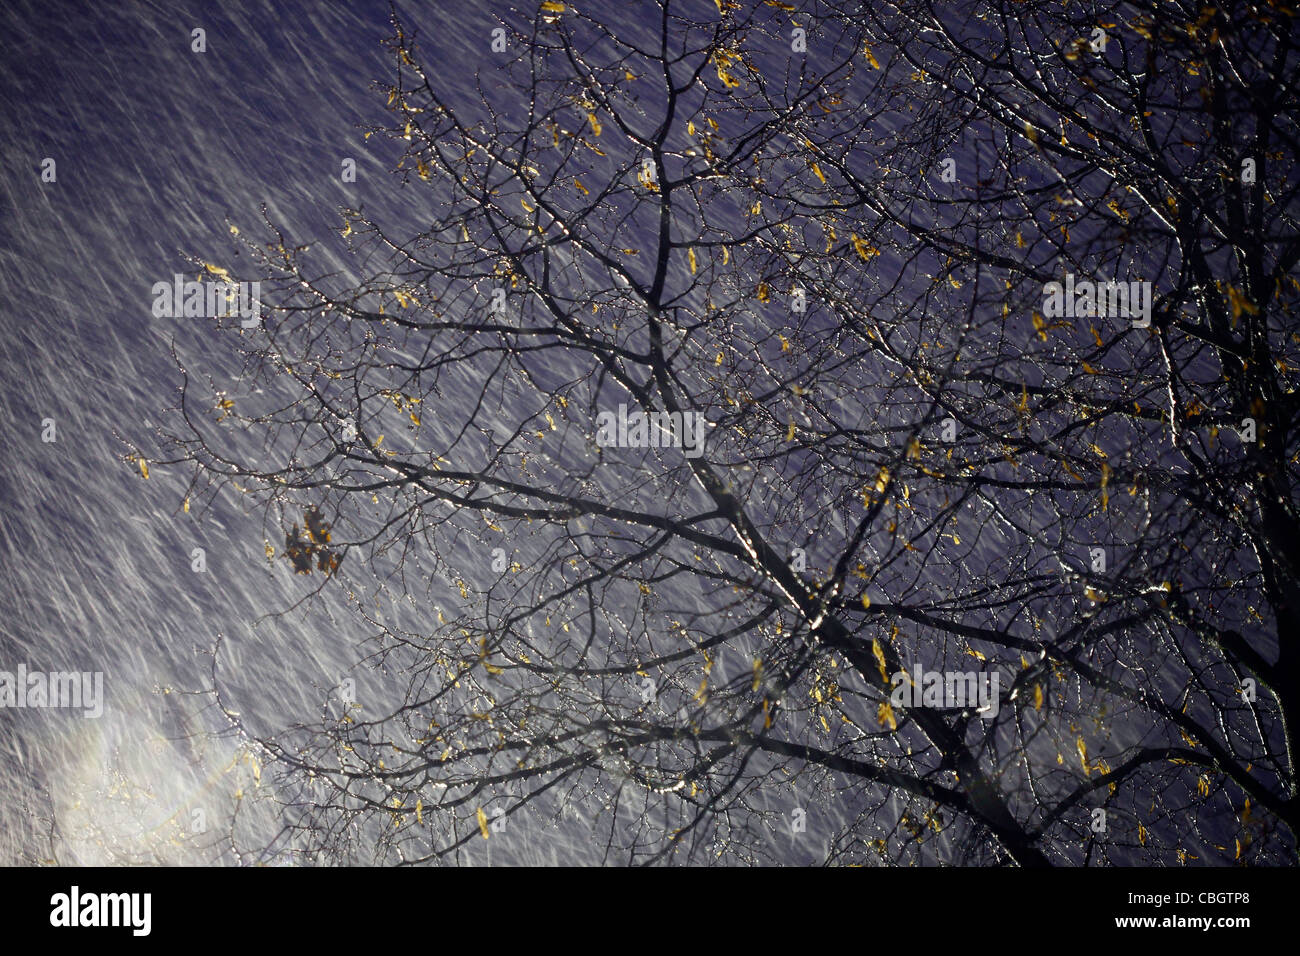 Heavy rain and snow-rain storm, tree moves in the wind, at night. - Stock Image